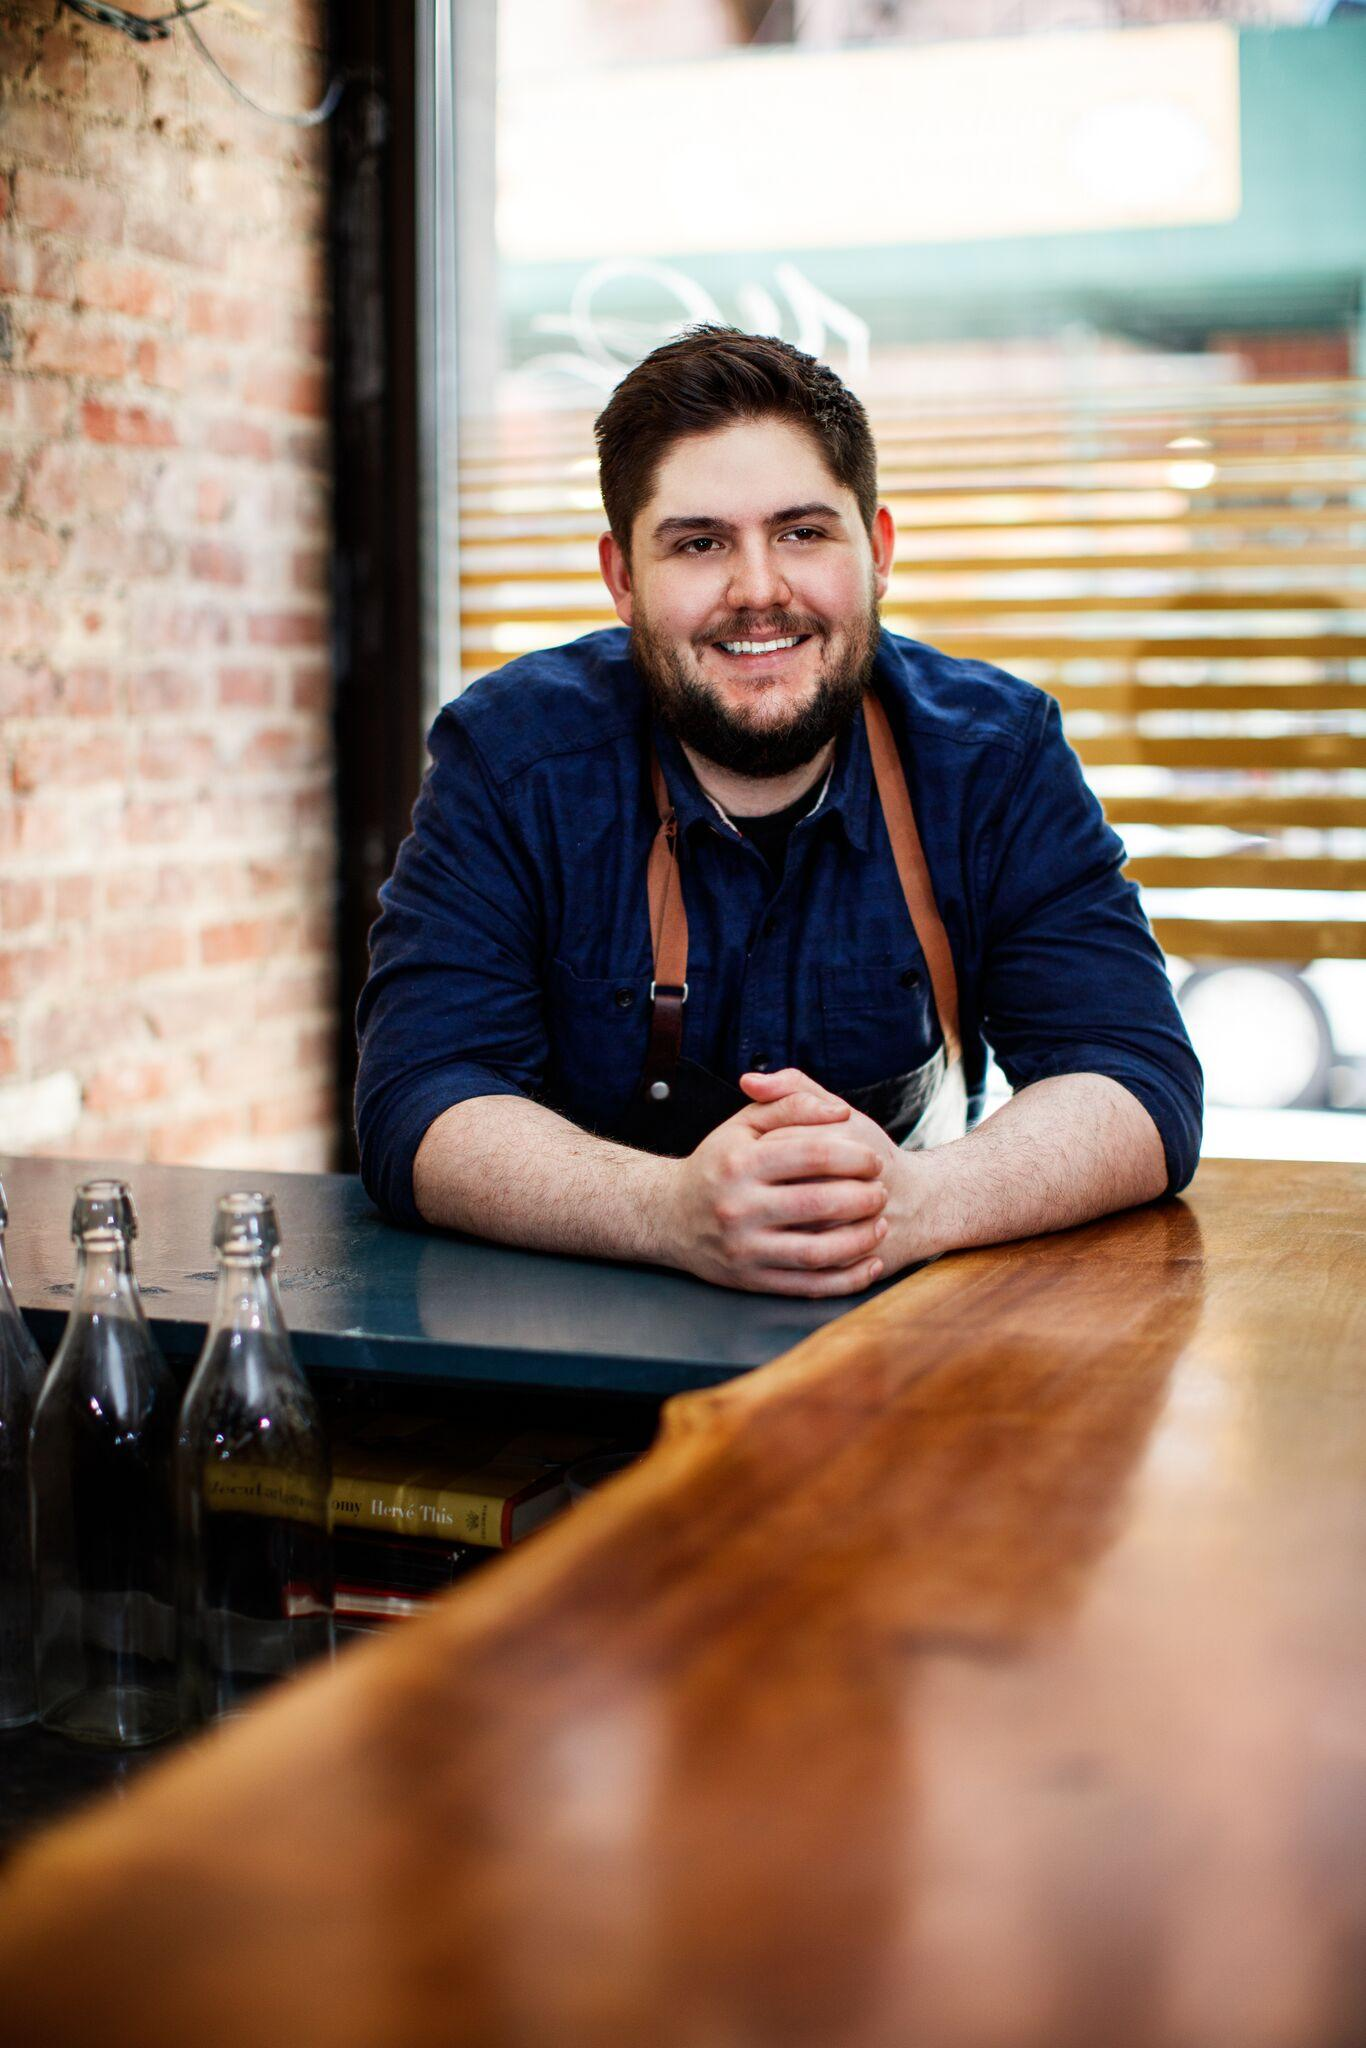 NYC's Top 5 Desserts, According to Wildair's Star Pastry Chef